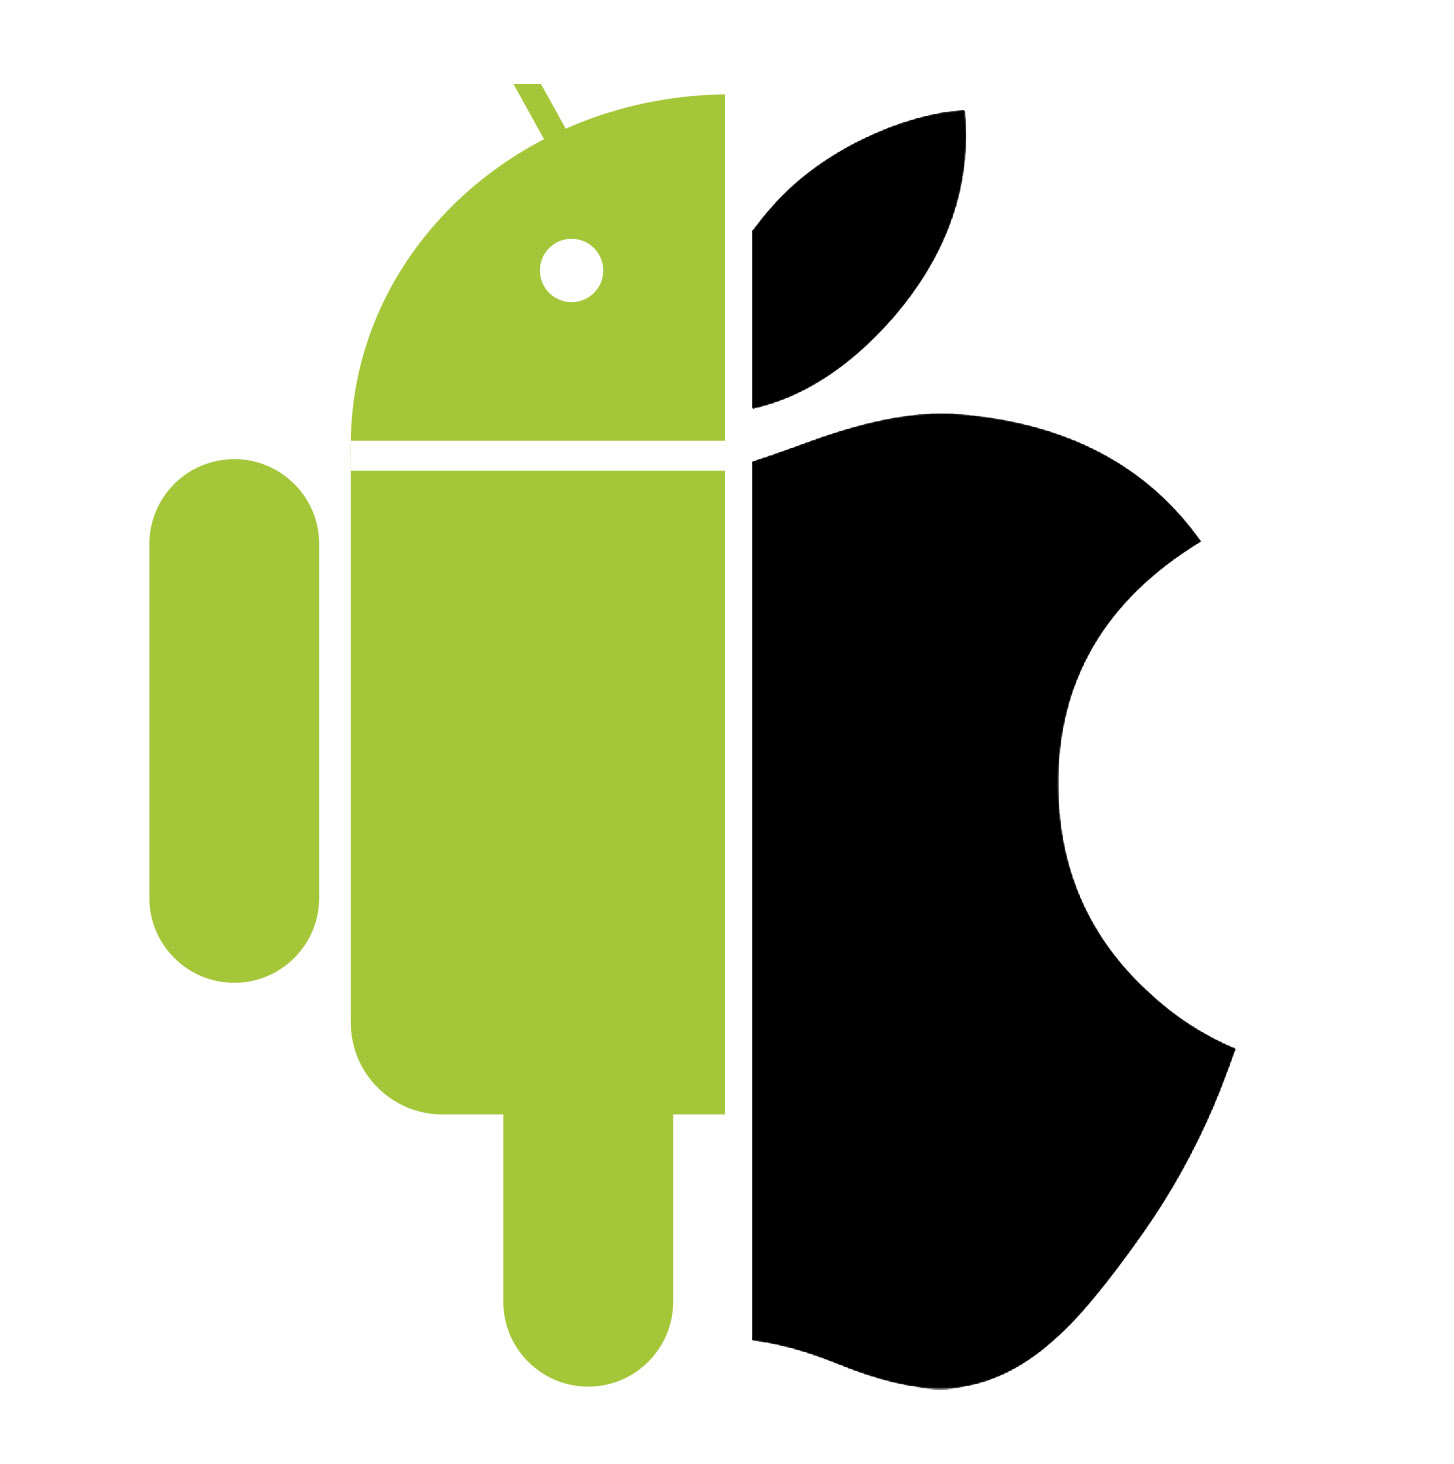 Switching teams: iOS to Android